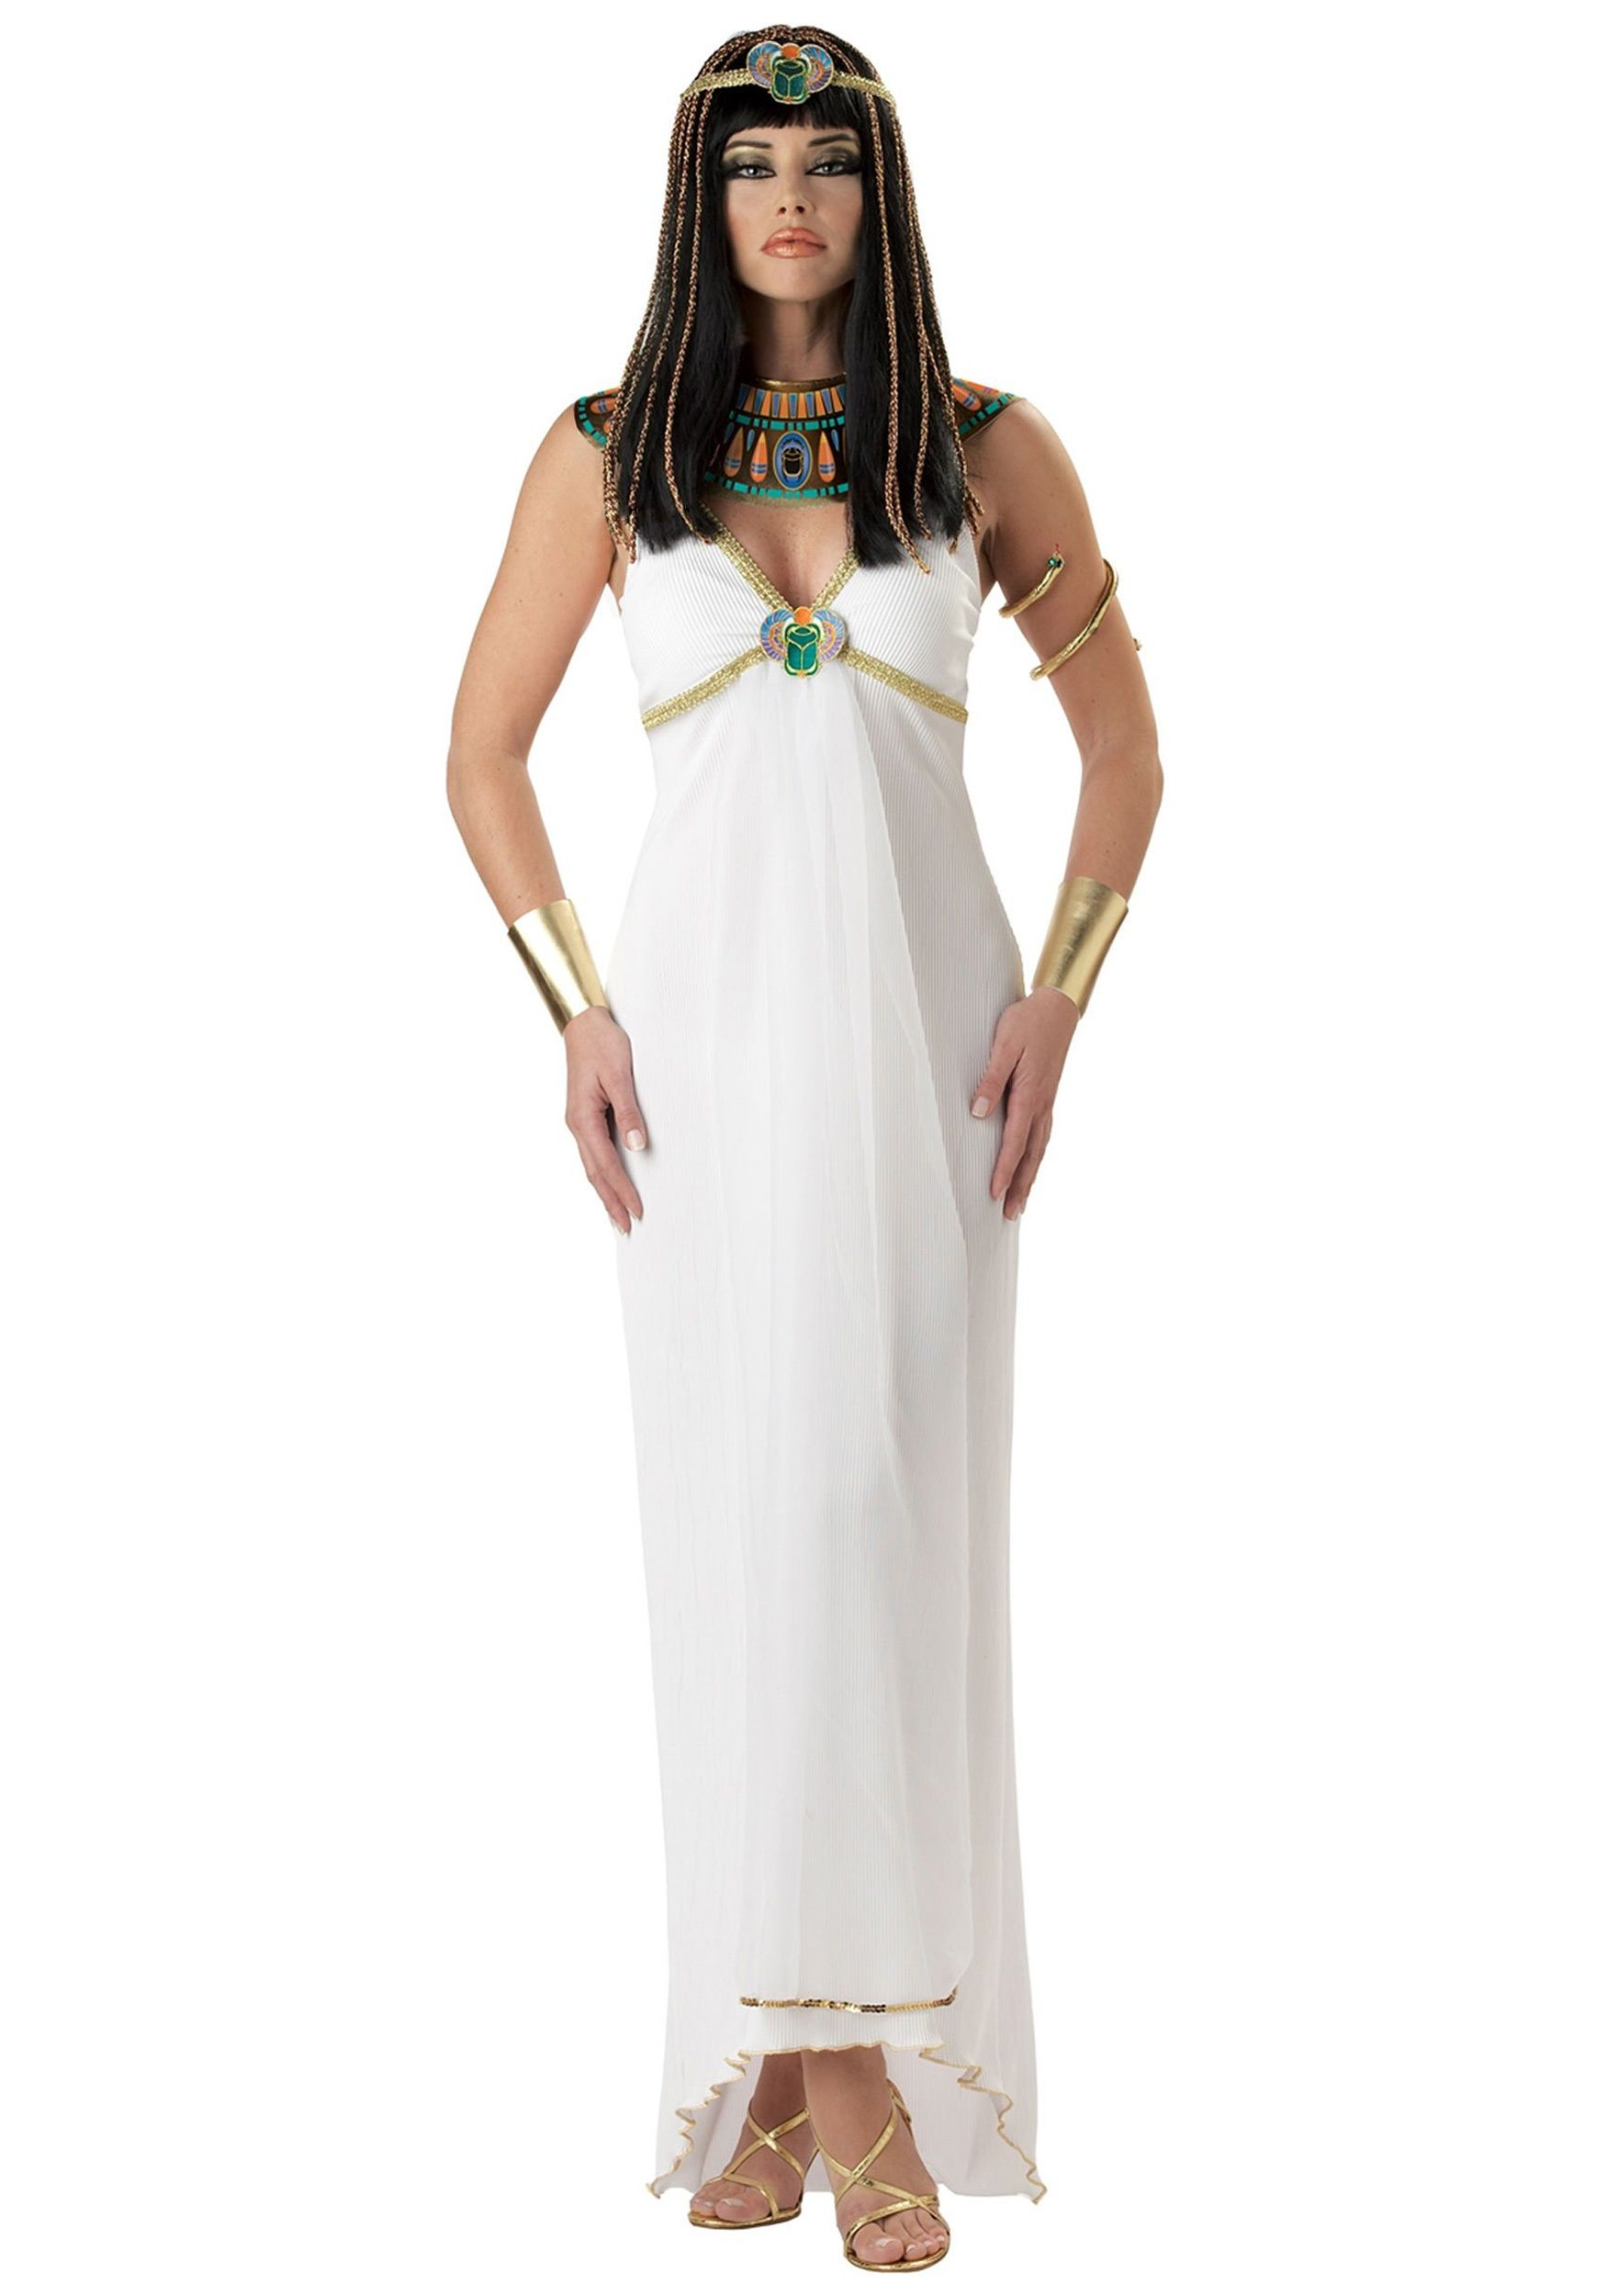 Adult Cleopatra Costume | Costume hire, Egyptian queen costume and ...